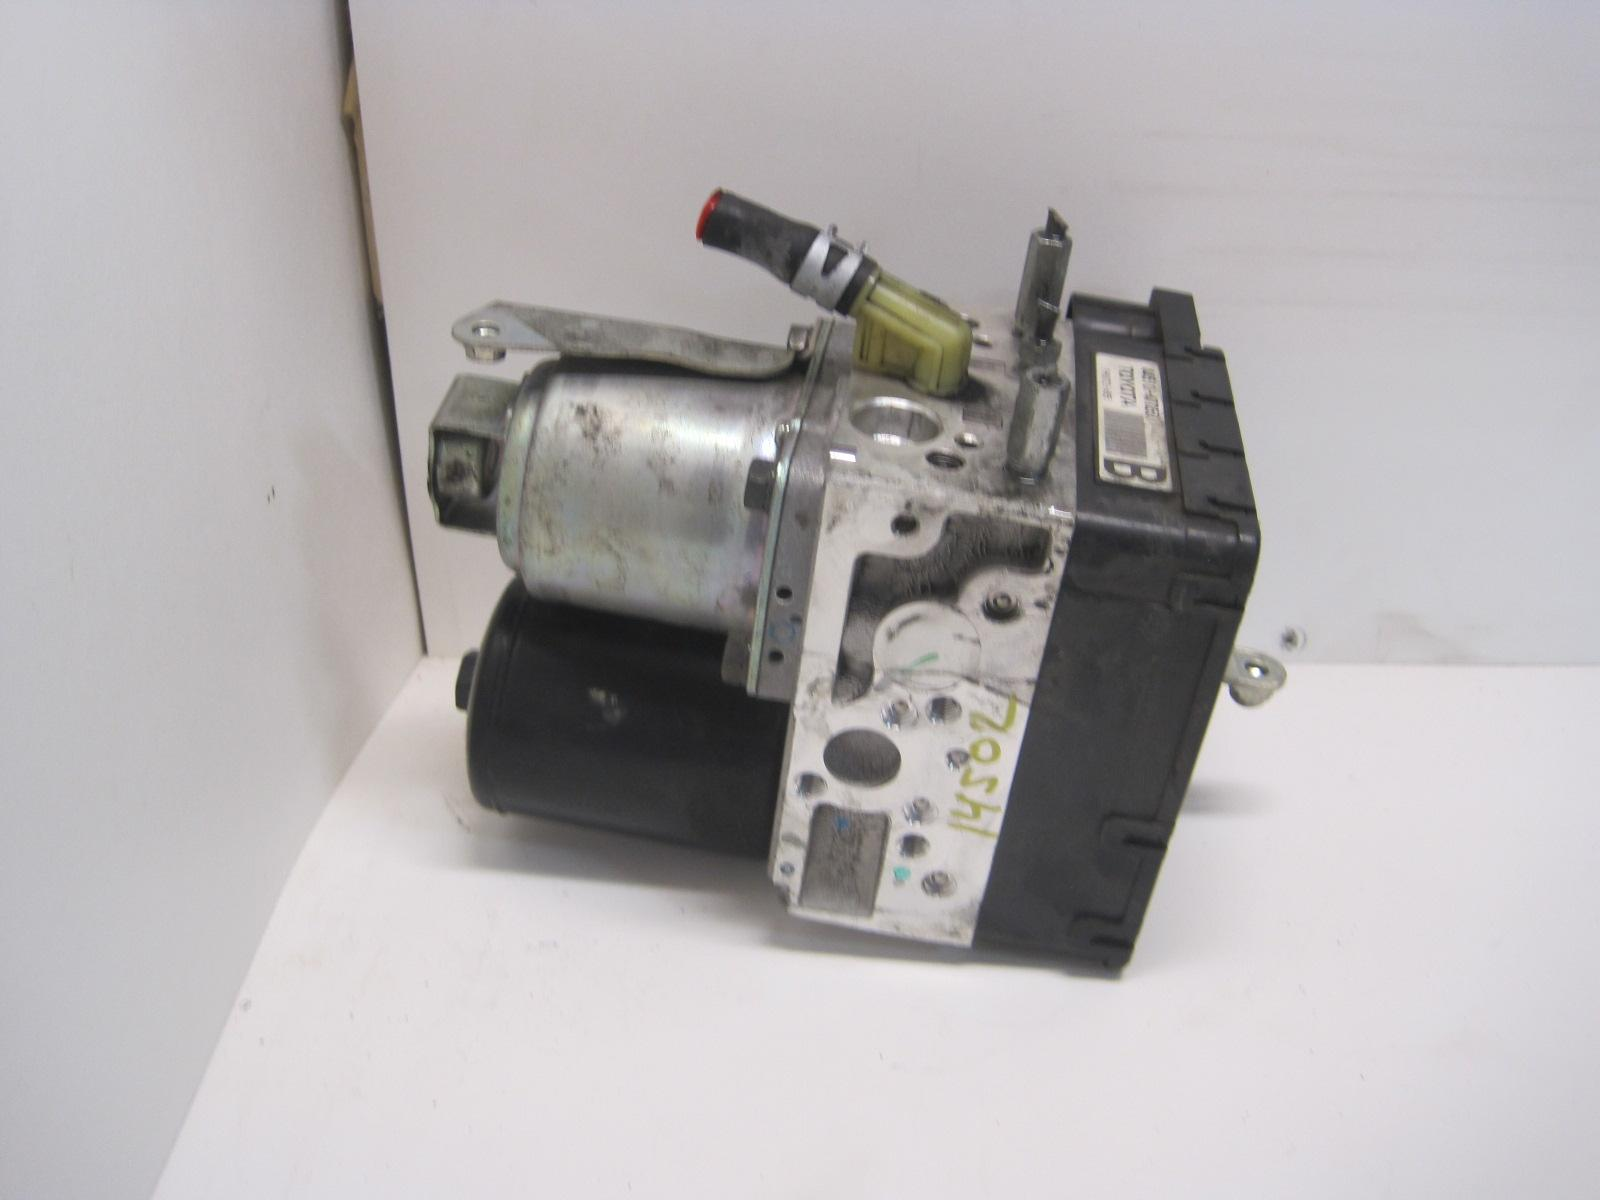 d8fa7d8baad481cf8f6428dda1d44c54 used abs units for 2007 toyota prius toyota prius partsmarket 2009 Toyota Prius at crackthecode.co